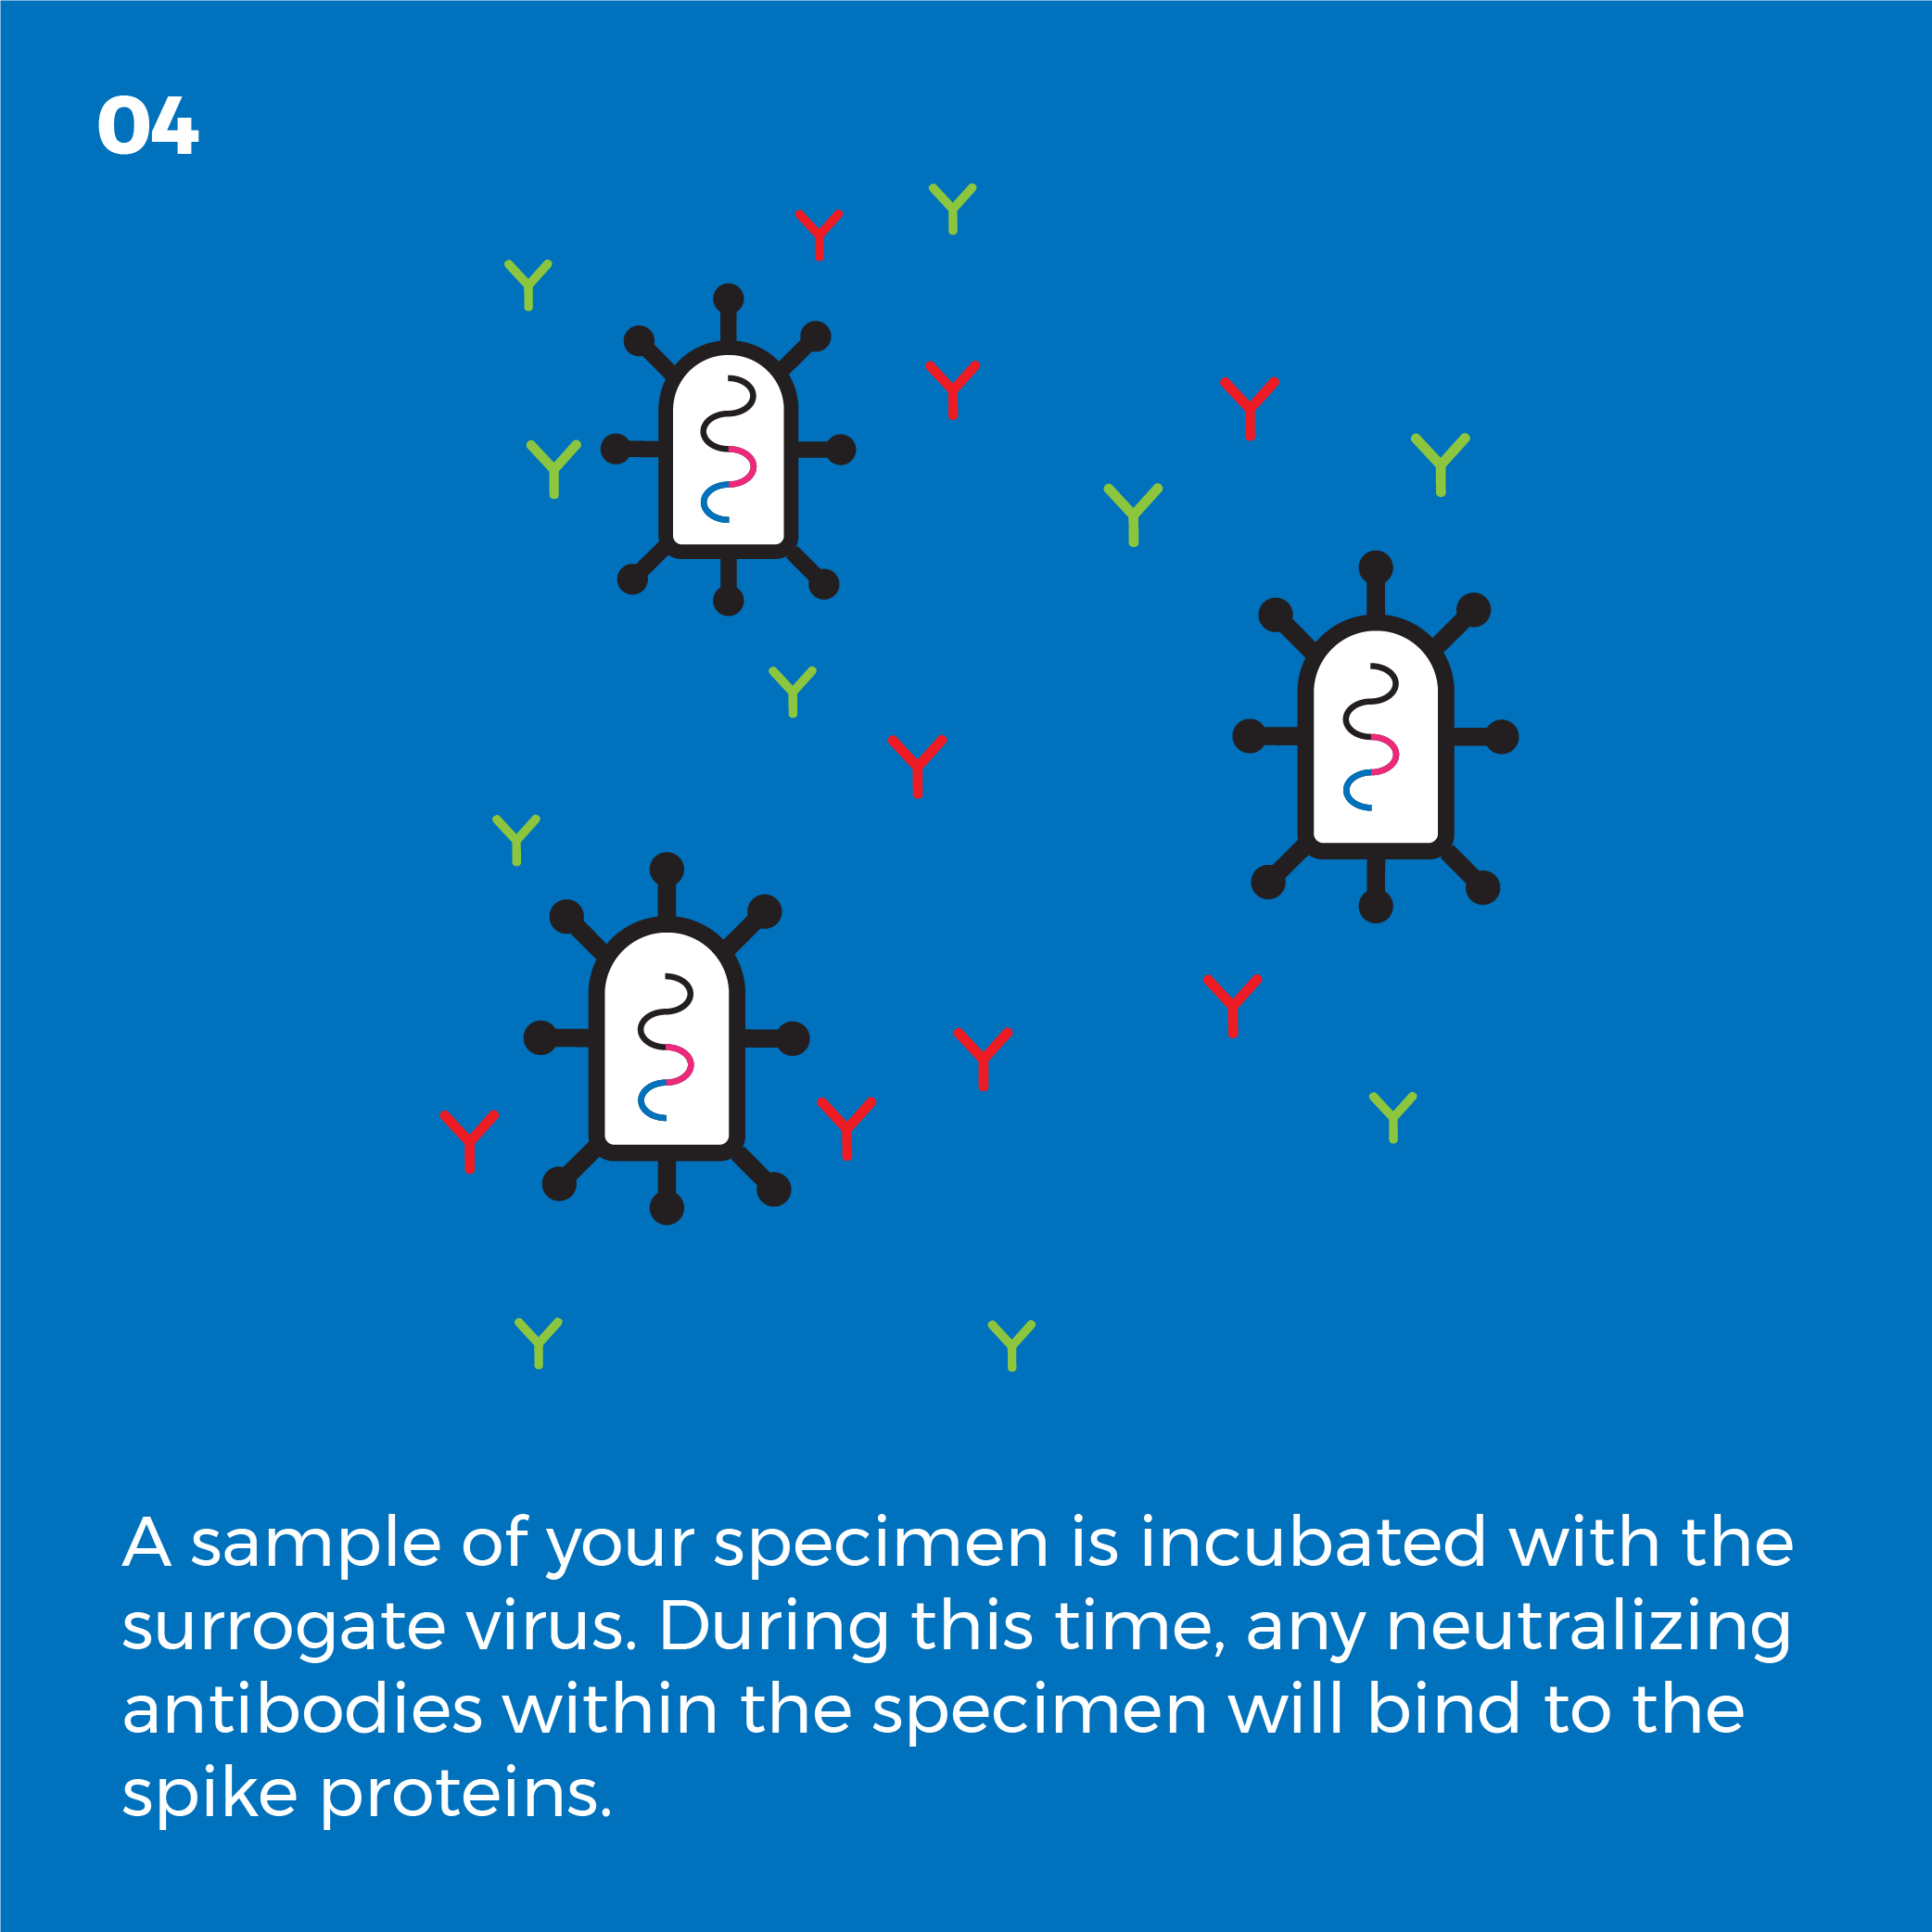 A sample of your specimen is incubated with the surrogate virus. During this time, any neutralizing antibodies within the specimen will bind to the spike proteins.